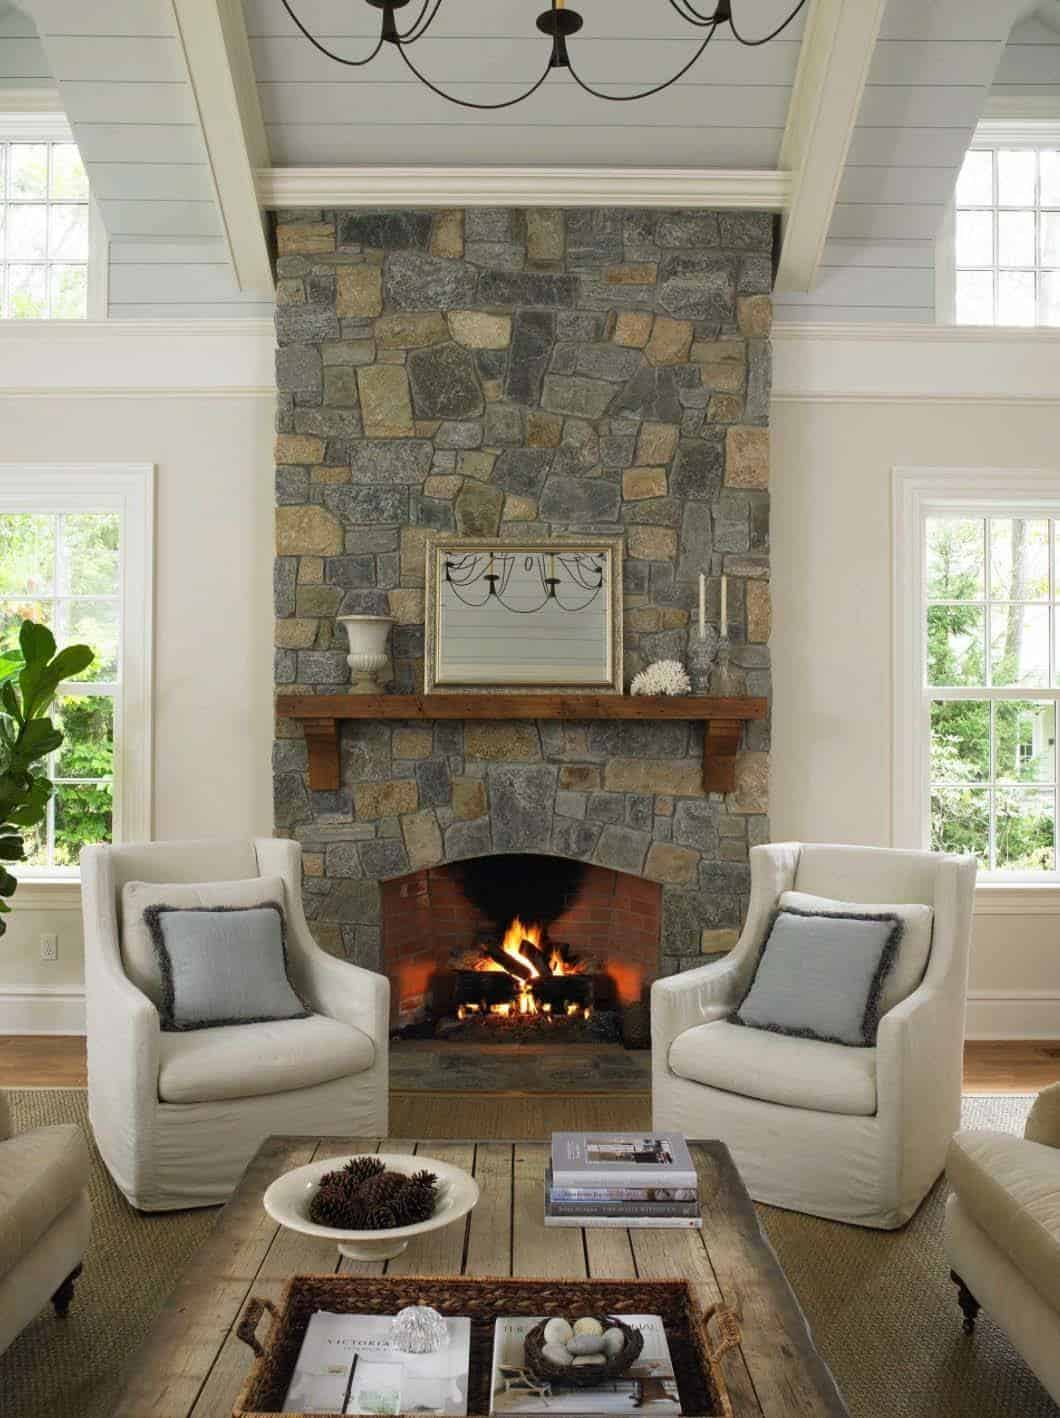 Cozy Fireplace Ideas-34-1 Kindesign